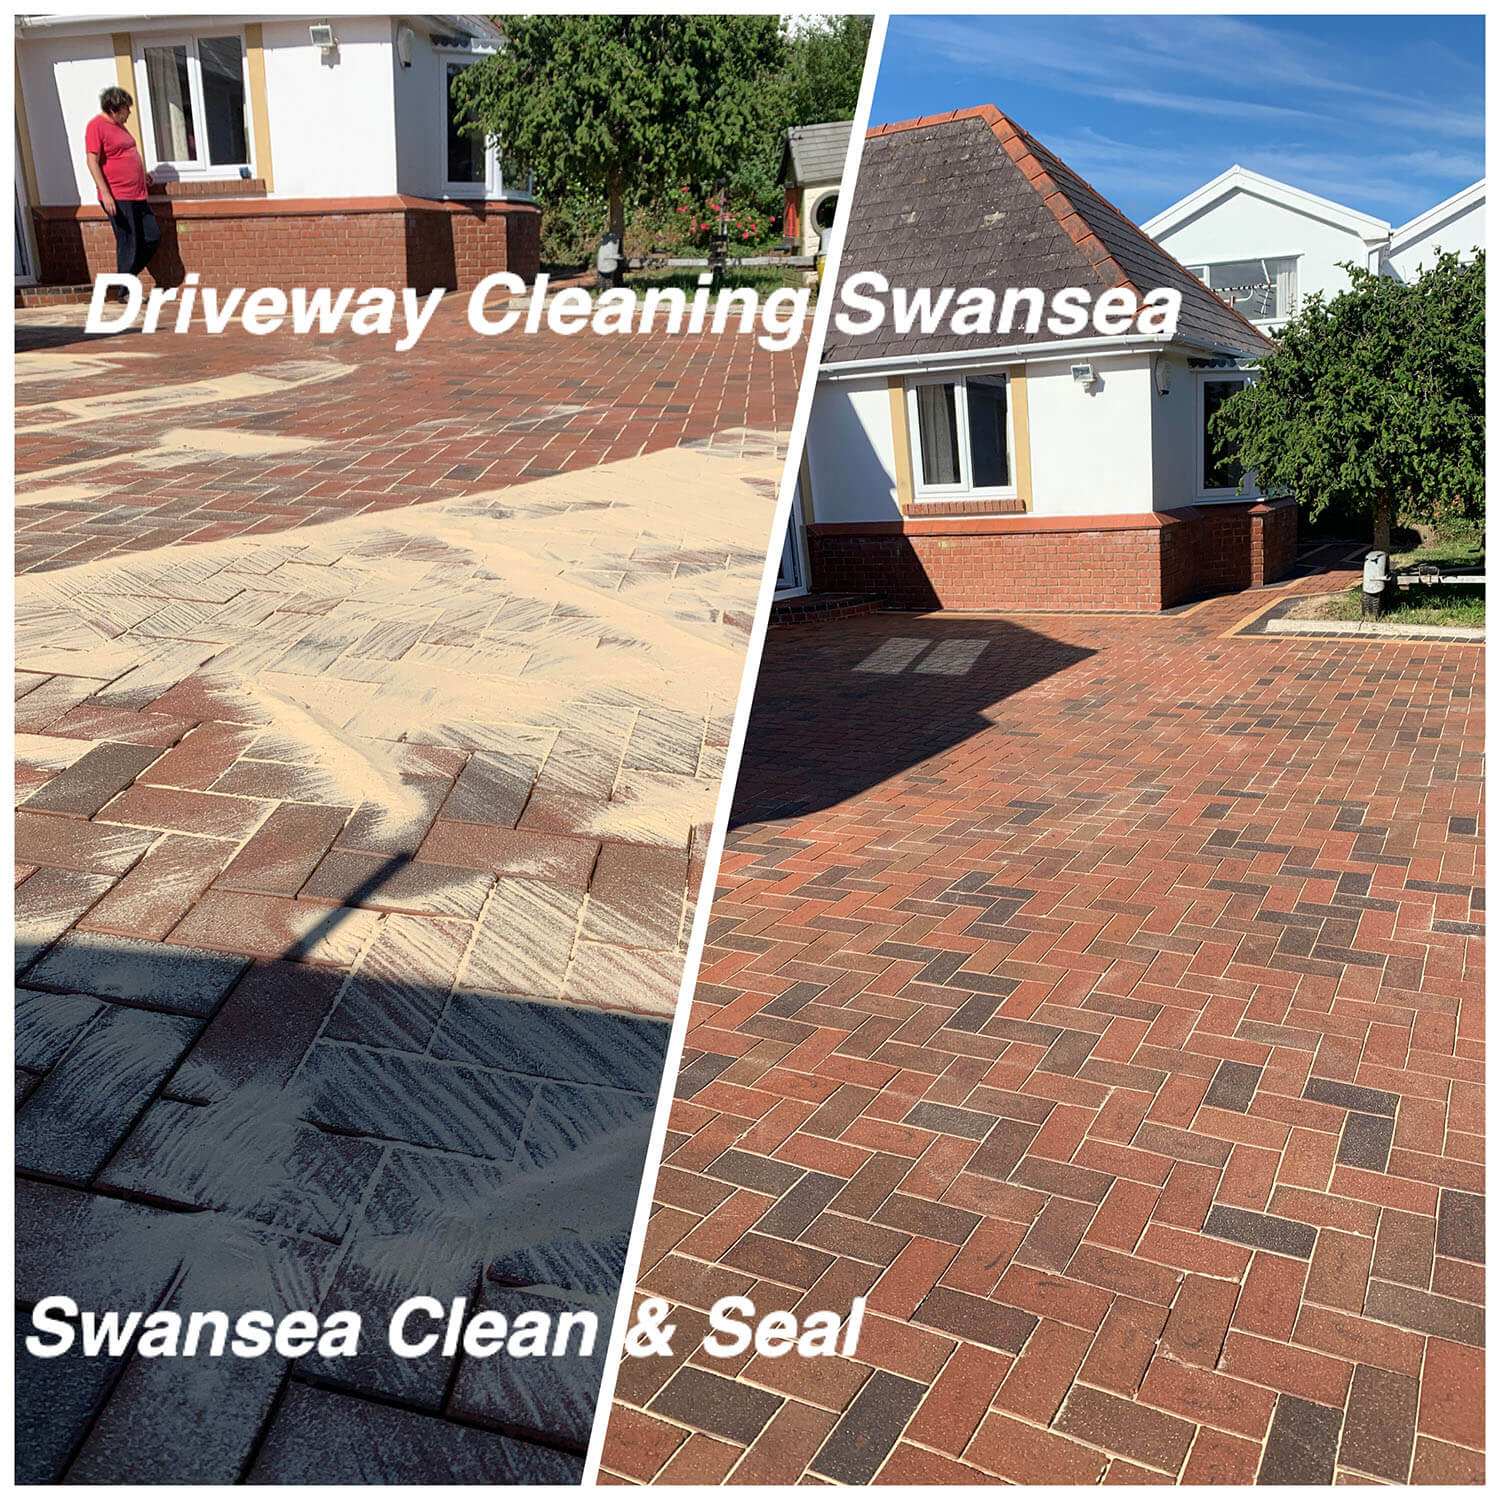 How Much Does it Cost for Driveway Cleaning?